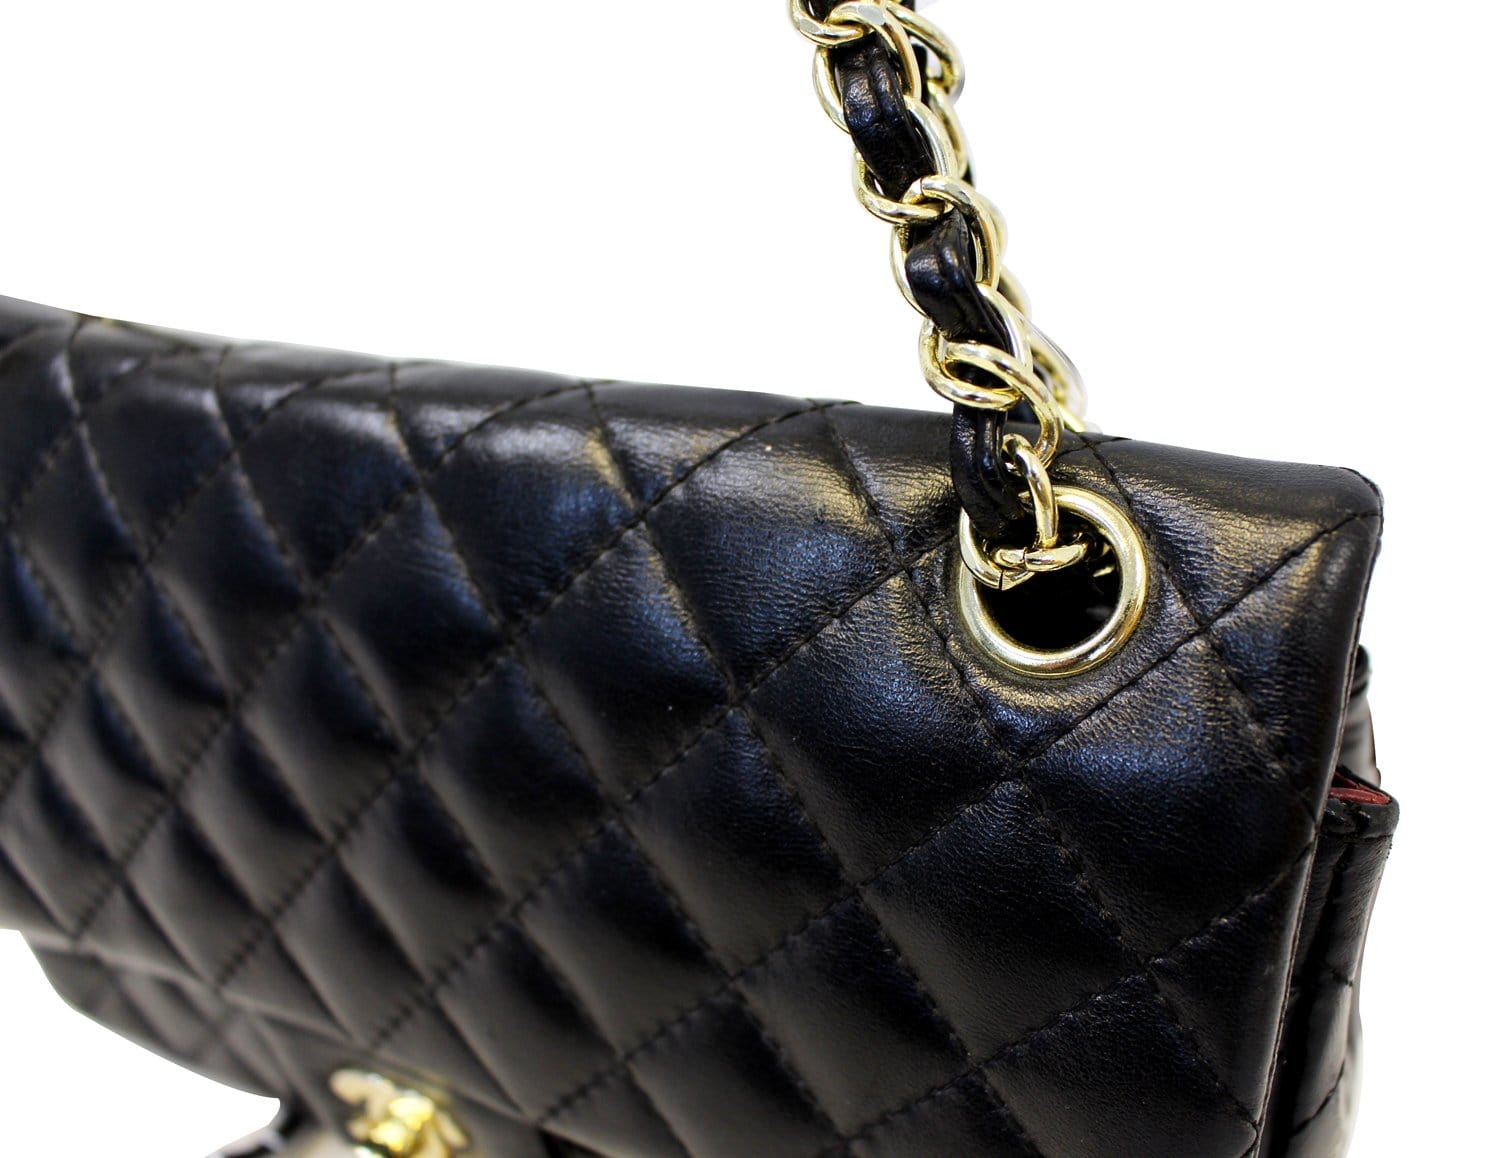 d98cd19f8810 CHANEL Quilted Lambskin Leather Double Flap Classic Medium Black Bag